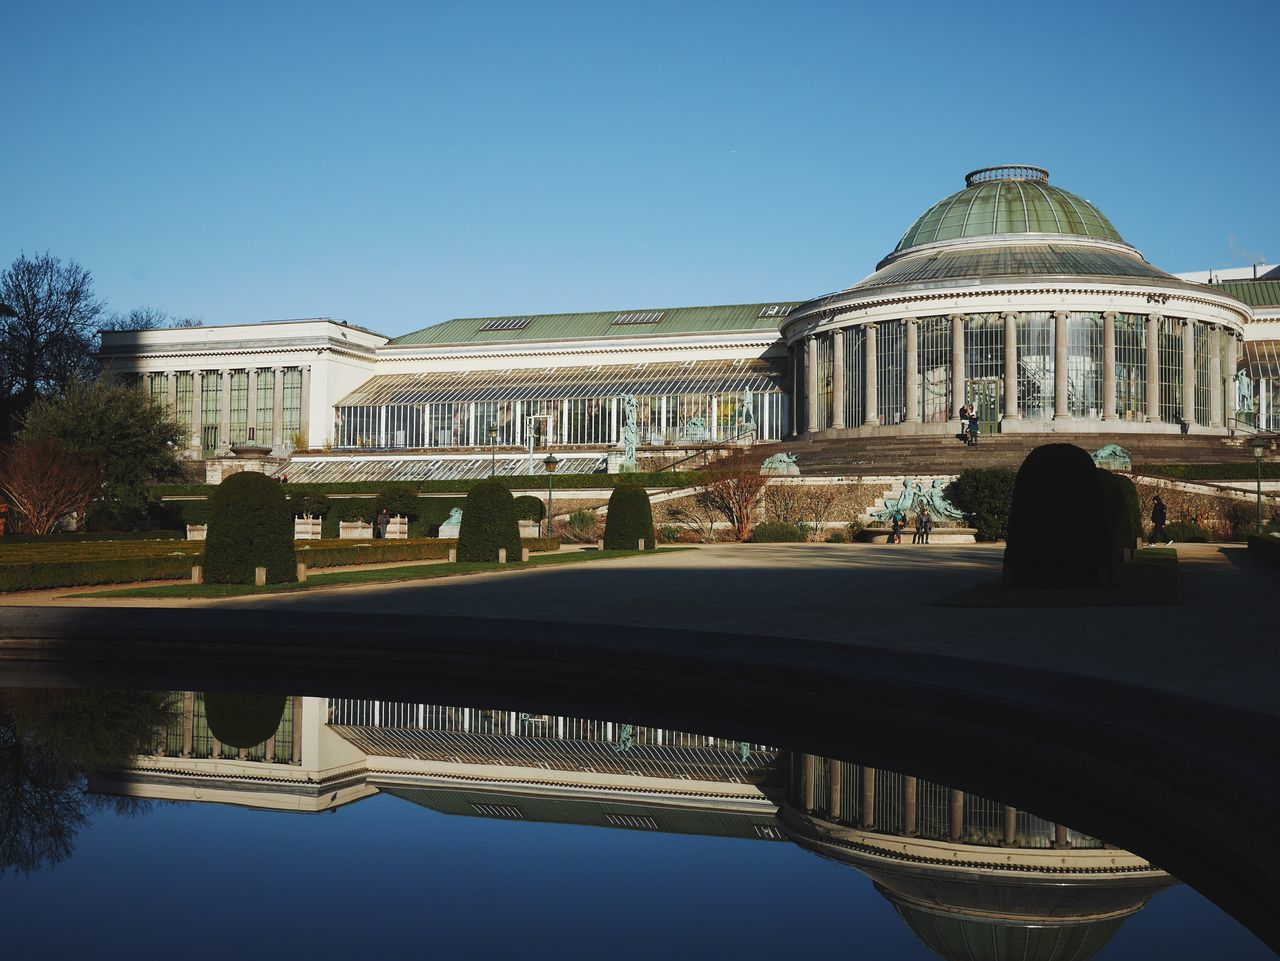 Reflection City Travel Water Architecture Outdoors Sky No People Day Le Botanique Botanic Botanical Garden Reflected Glory Brussels Belgium Architecture The Architect - 2017 EyeEm Awards